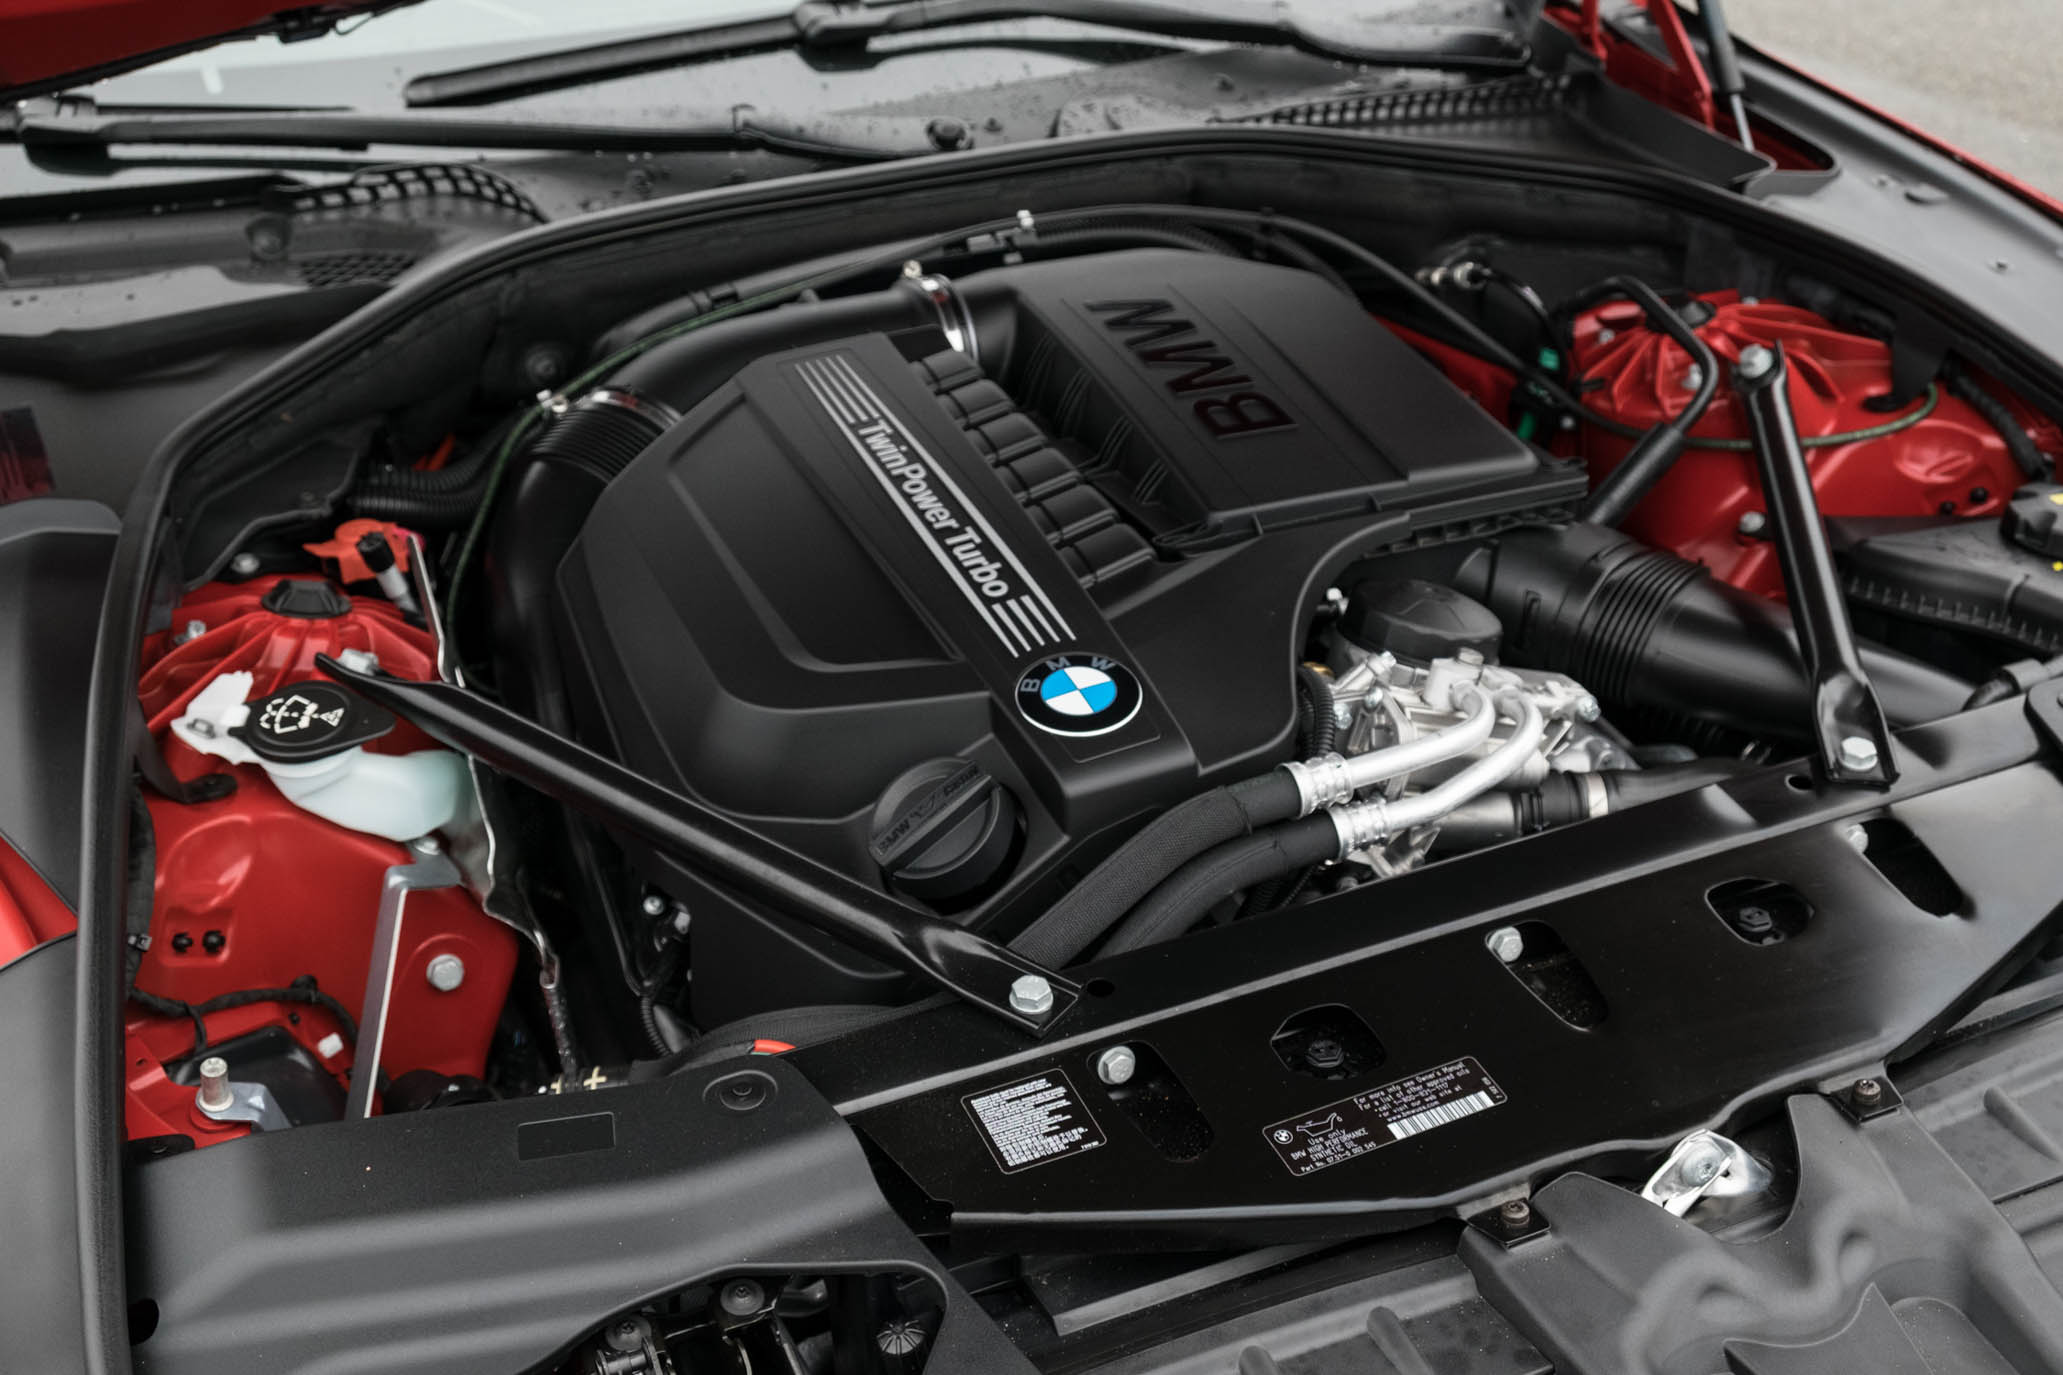 2016 BMW 640i Convertible Turbocharged 3.0-Liter Inline-6 Engine